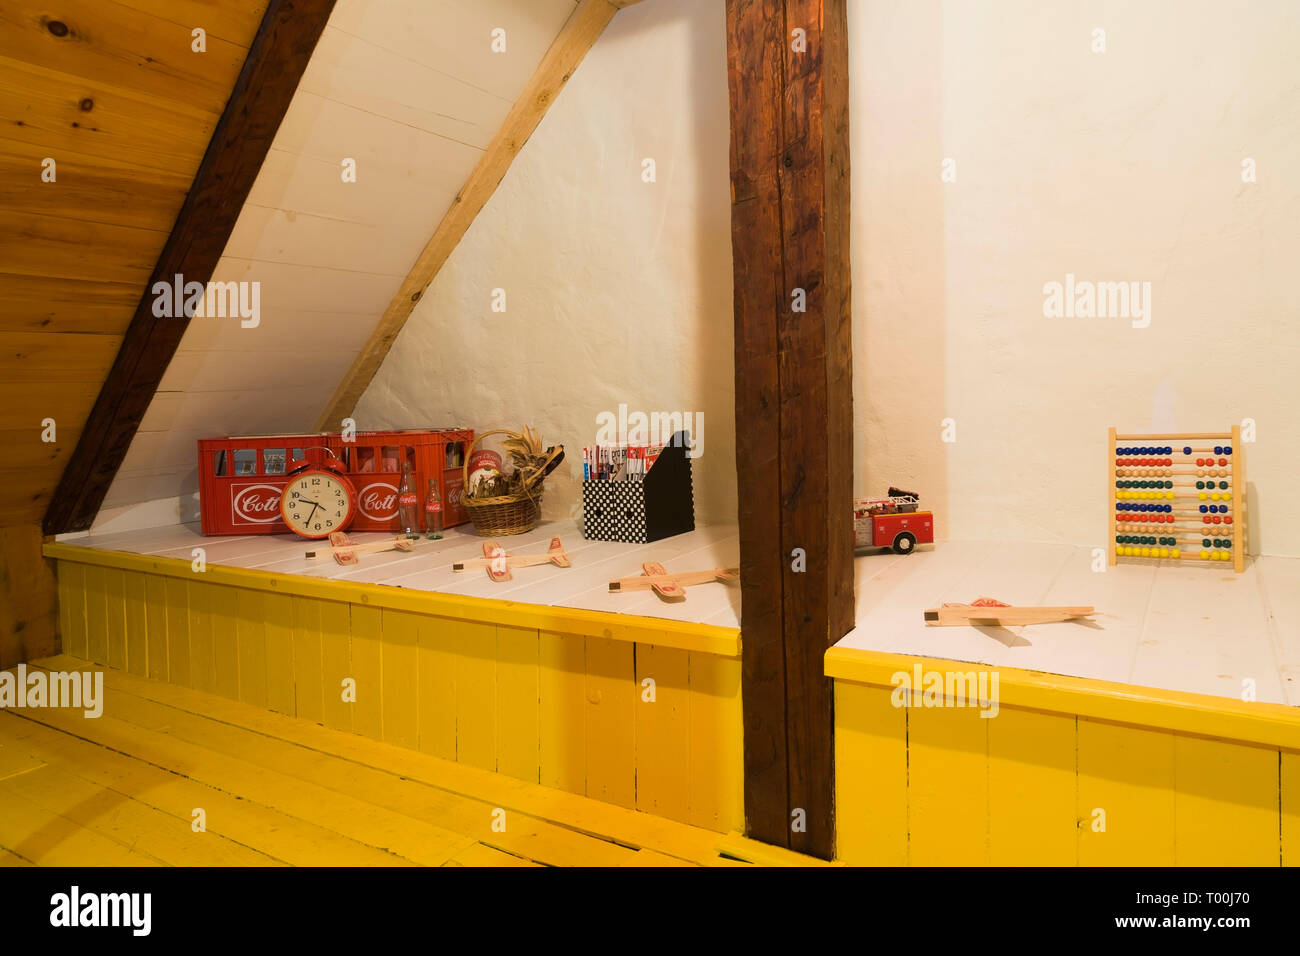 Vintage collectibles on raised platform in attic room with yellow painted pinewood floorboards inside an old circa 1760 Canadiana fieldstone home - Stock Image